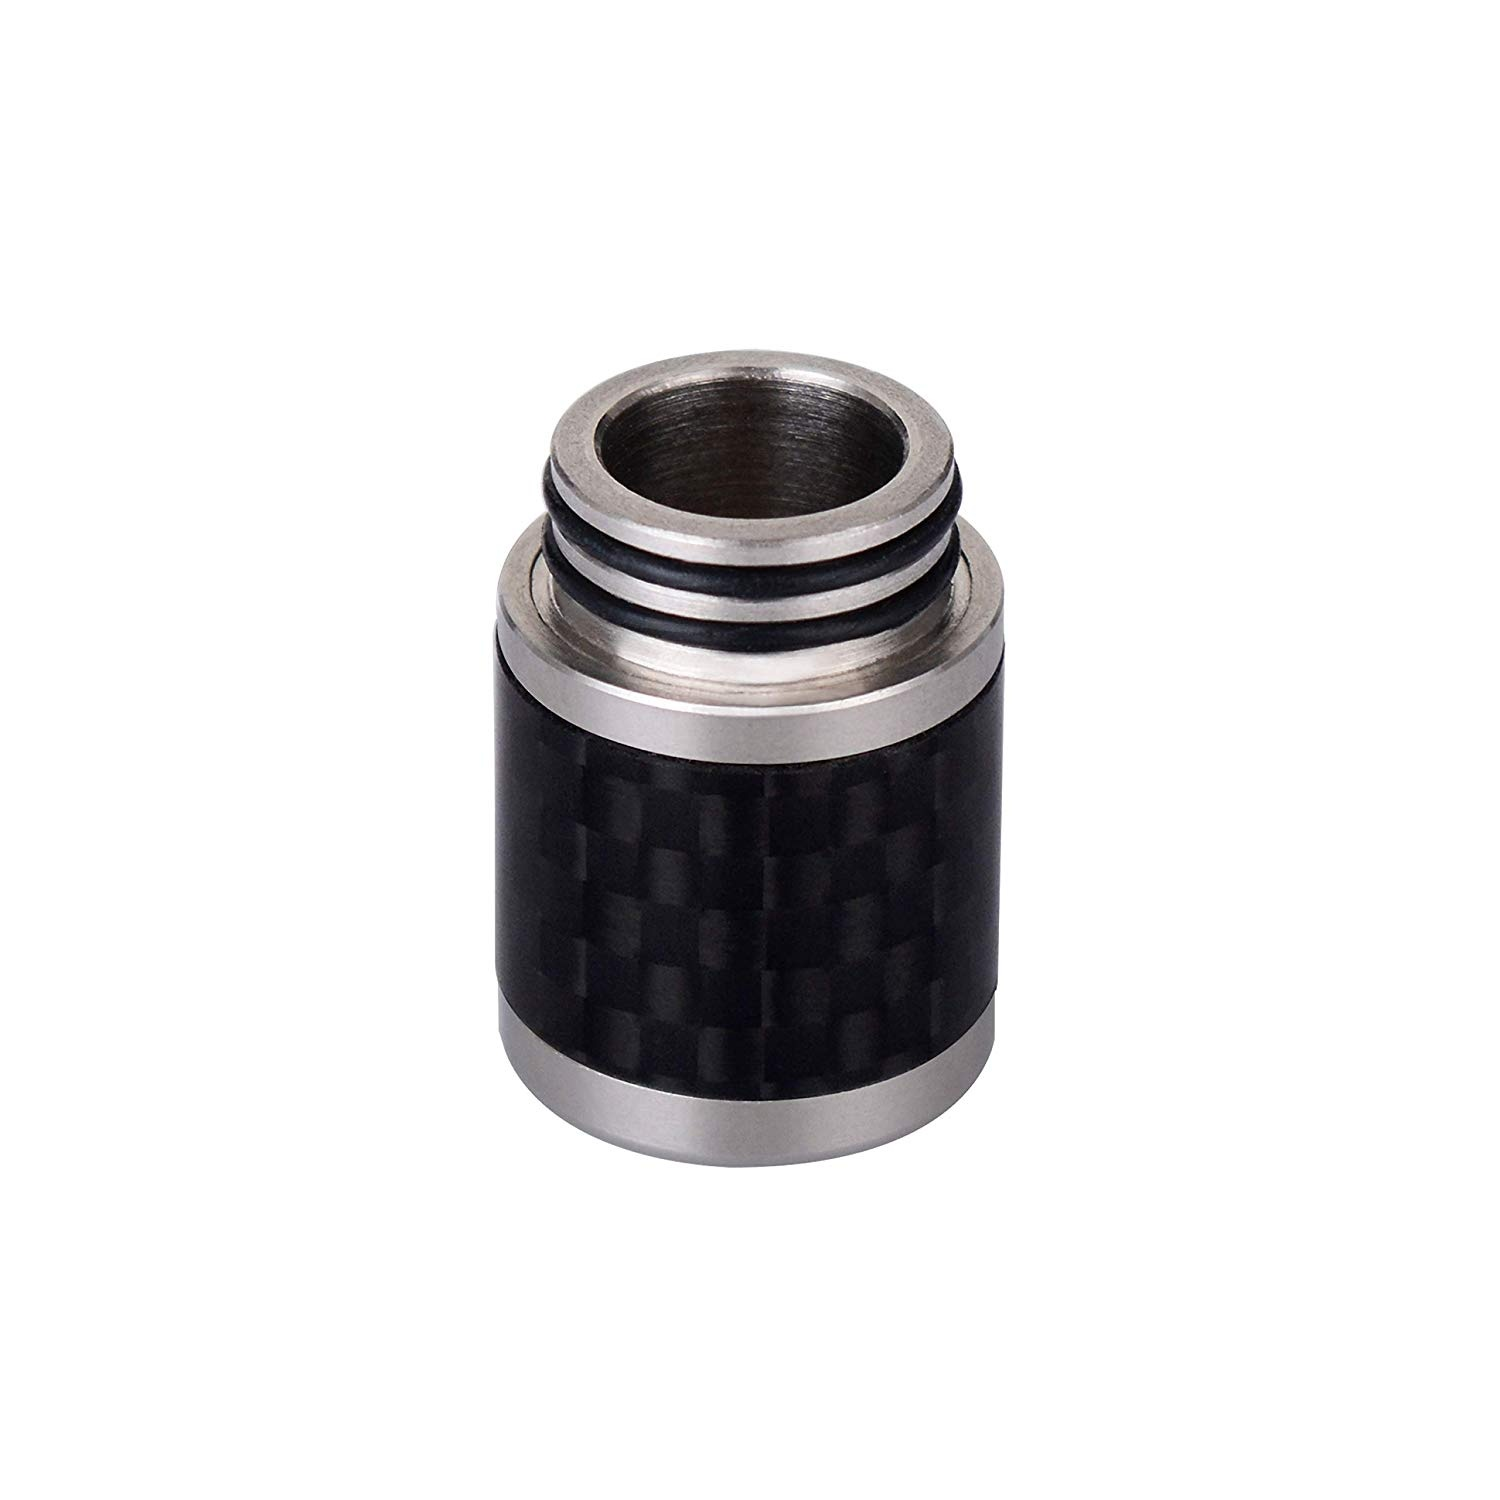 WOLFTEETH 2019 Carbon Fiber Plus Stainless Steel 810 Drip Tip Mouthpieces for Electronic Cigarette Vape Tank Vaping Devices 1243